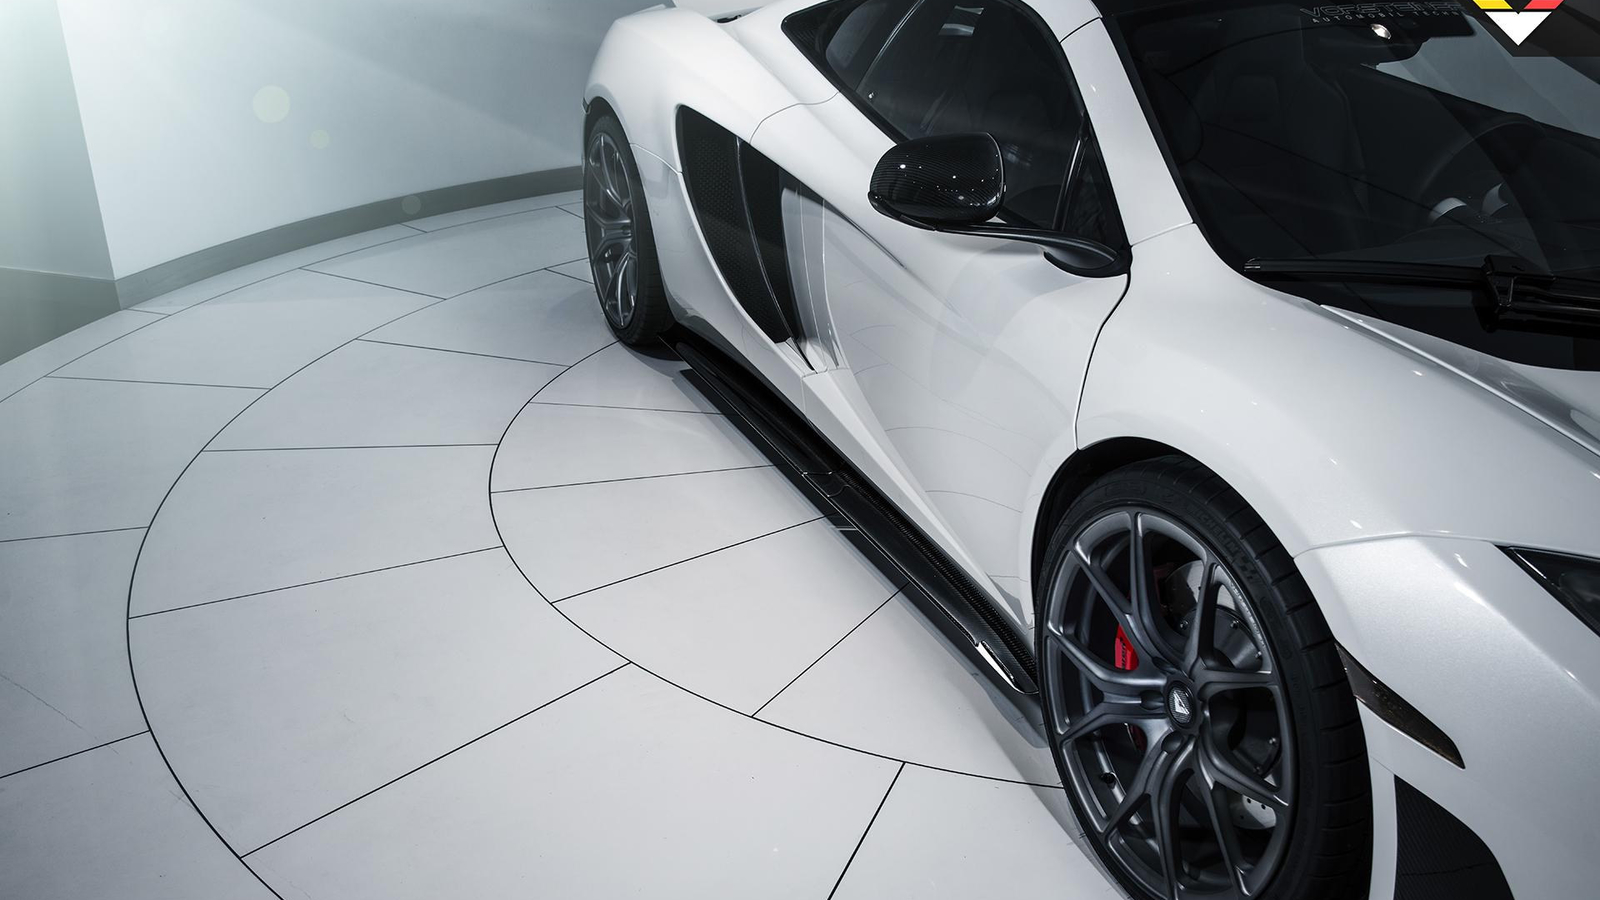 McLaren supercar wallpaper download 49796 - Automotive Wallpapers ...